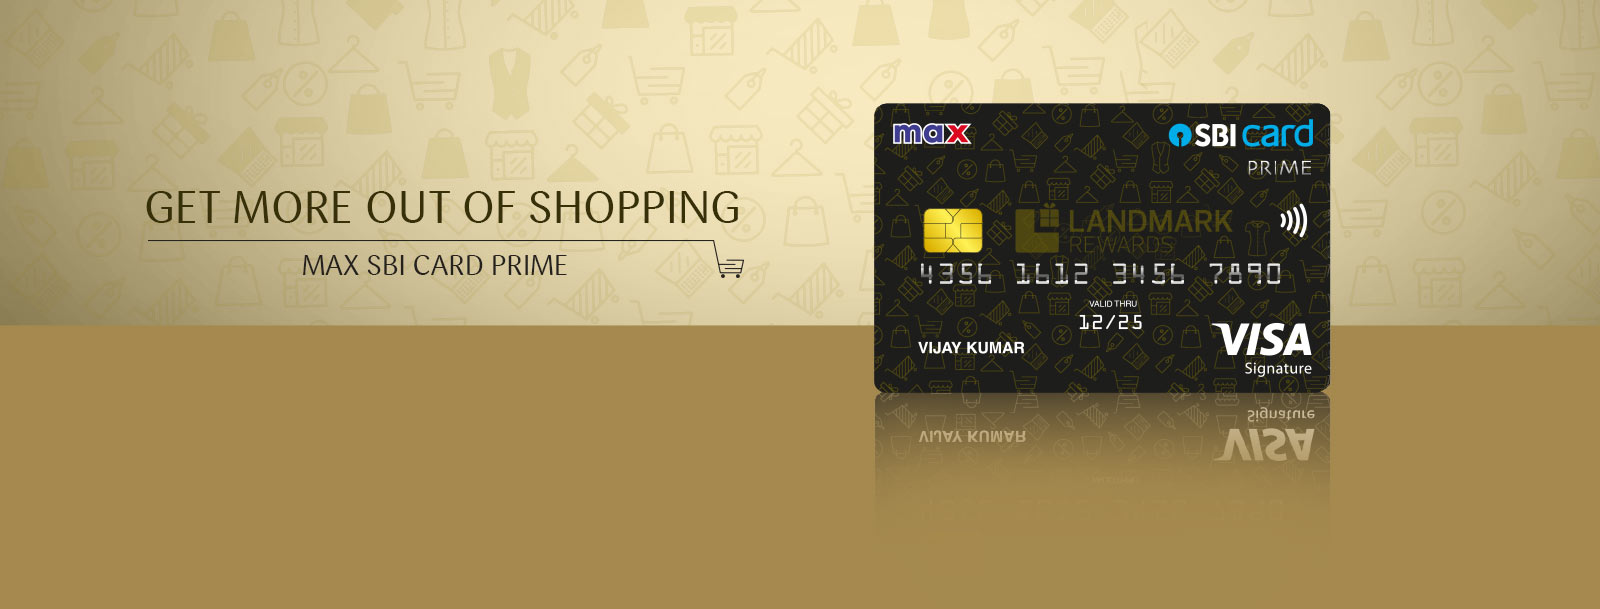 Max SBI Card PRIME - Benefits and Features - Apply Now  SBI Card